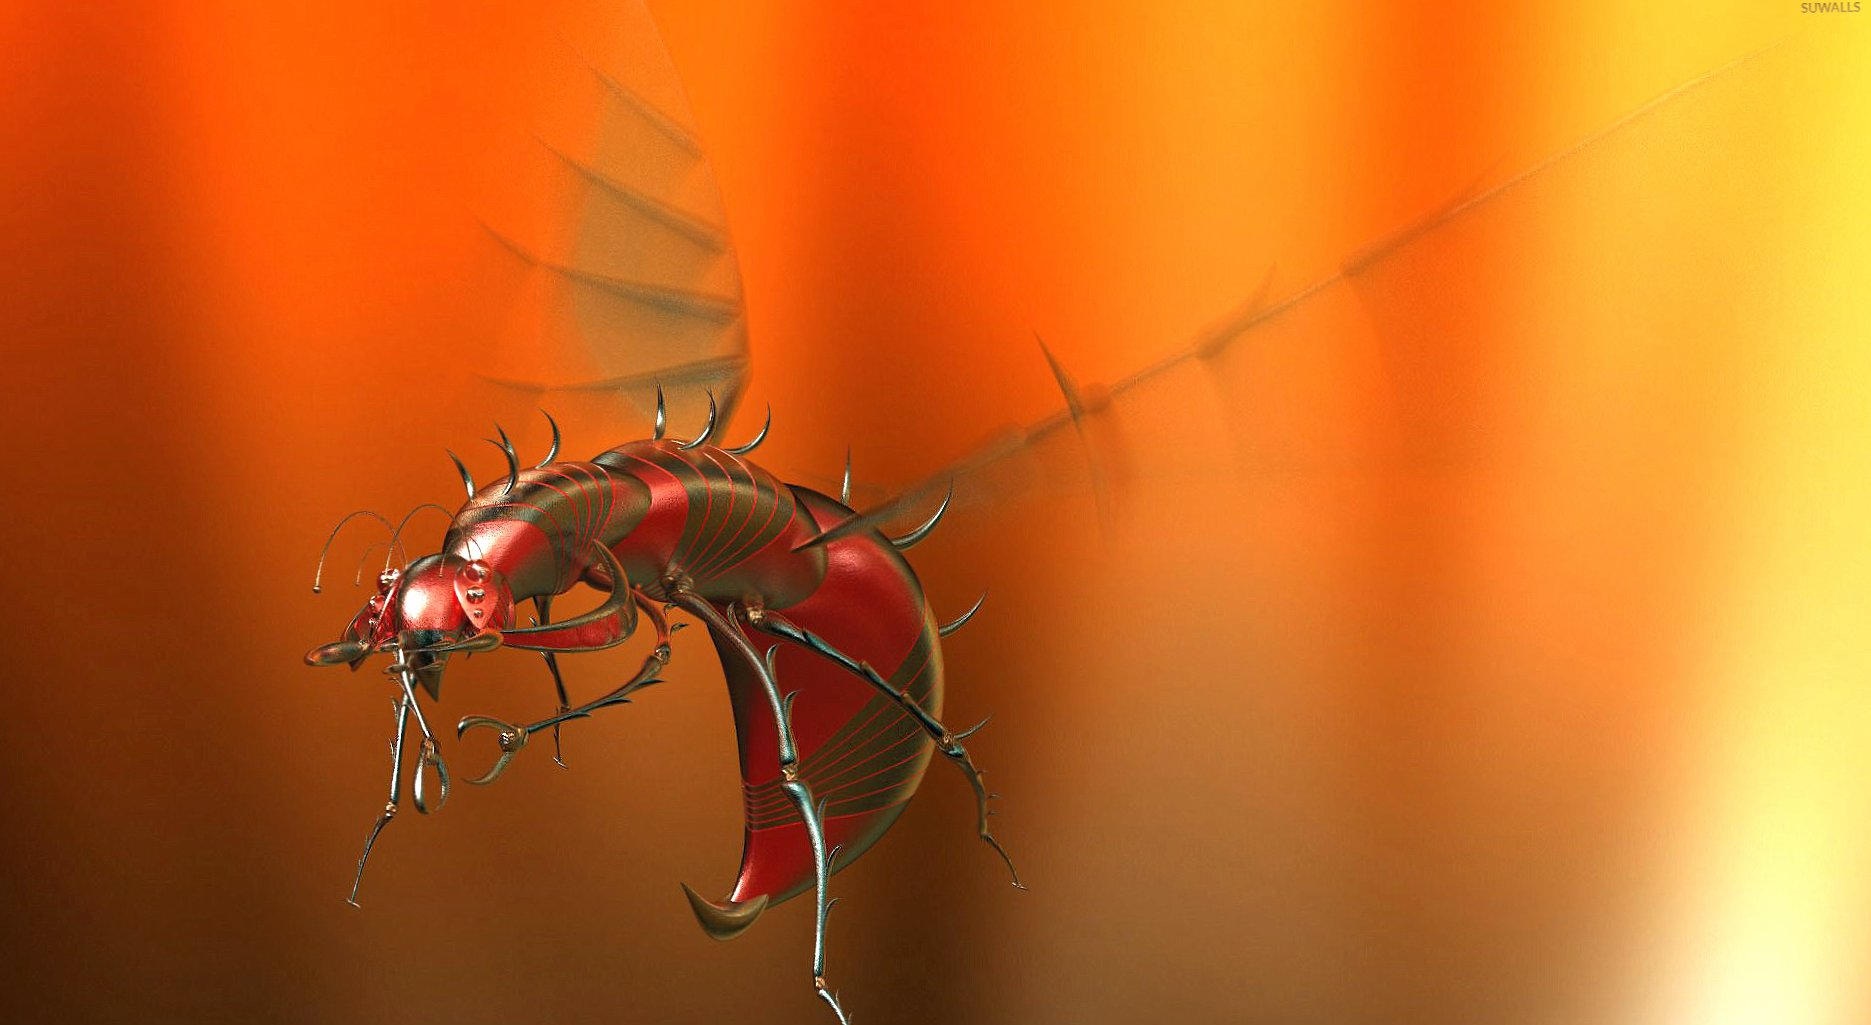 Flying robot insect wallpapers HD quality